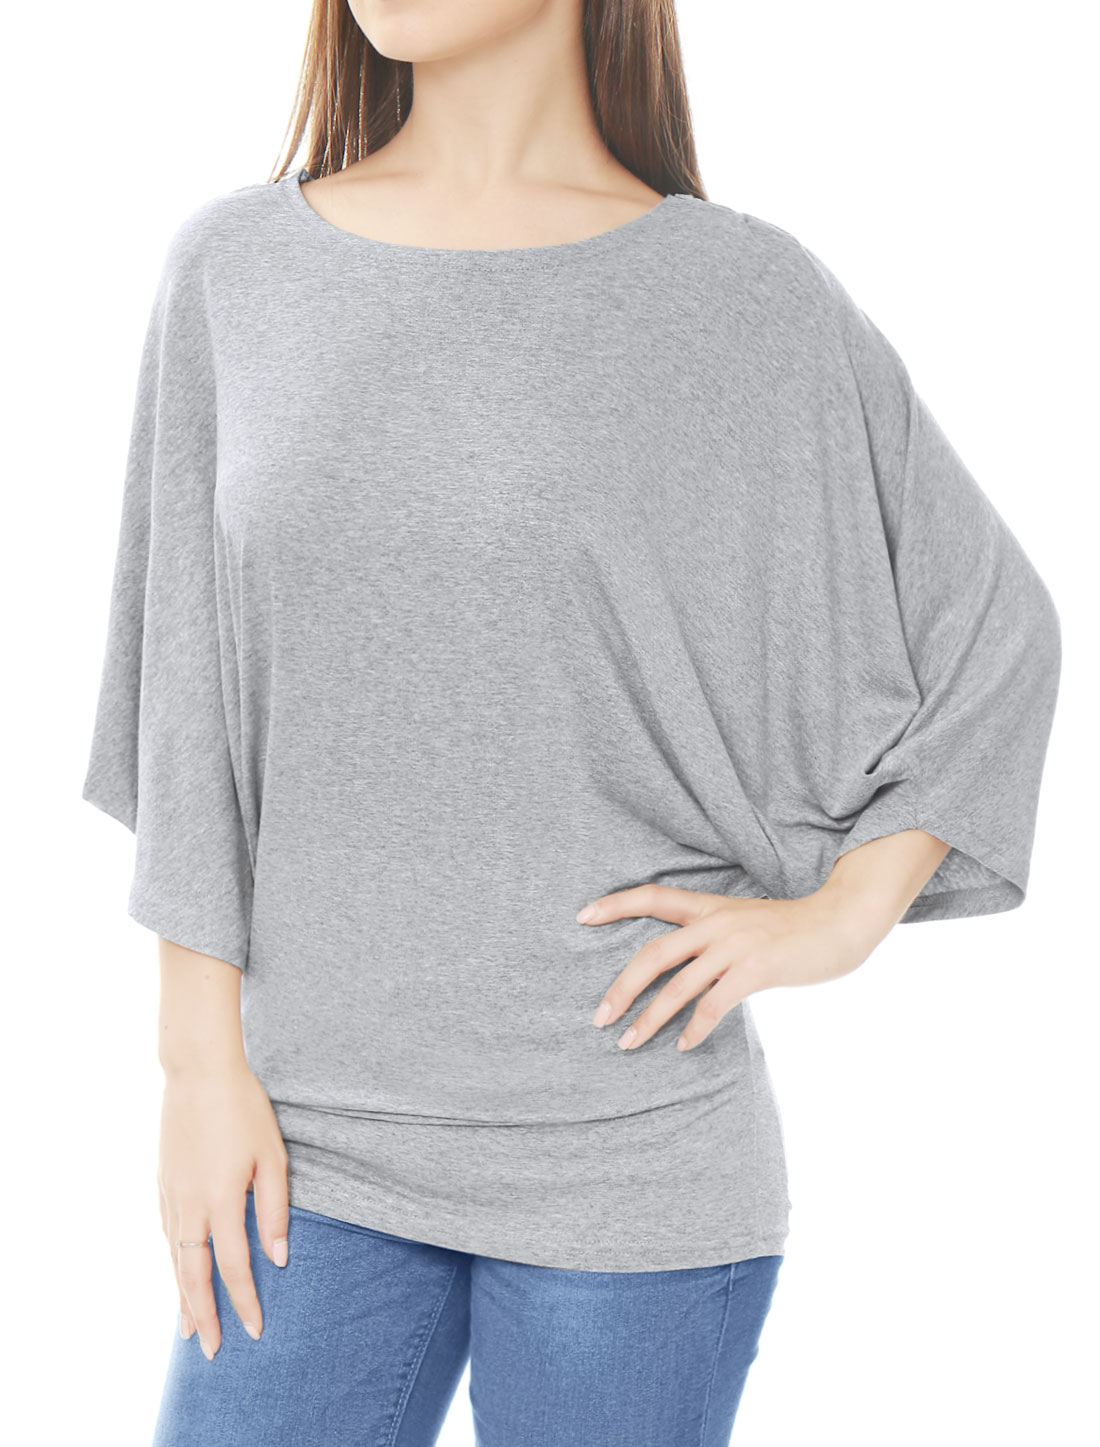 Women Boat Neck Batwing Sleeves Oversized Tunic Top Gray XS